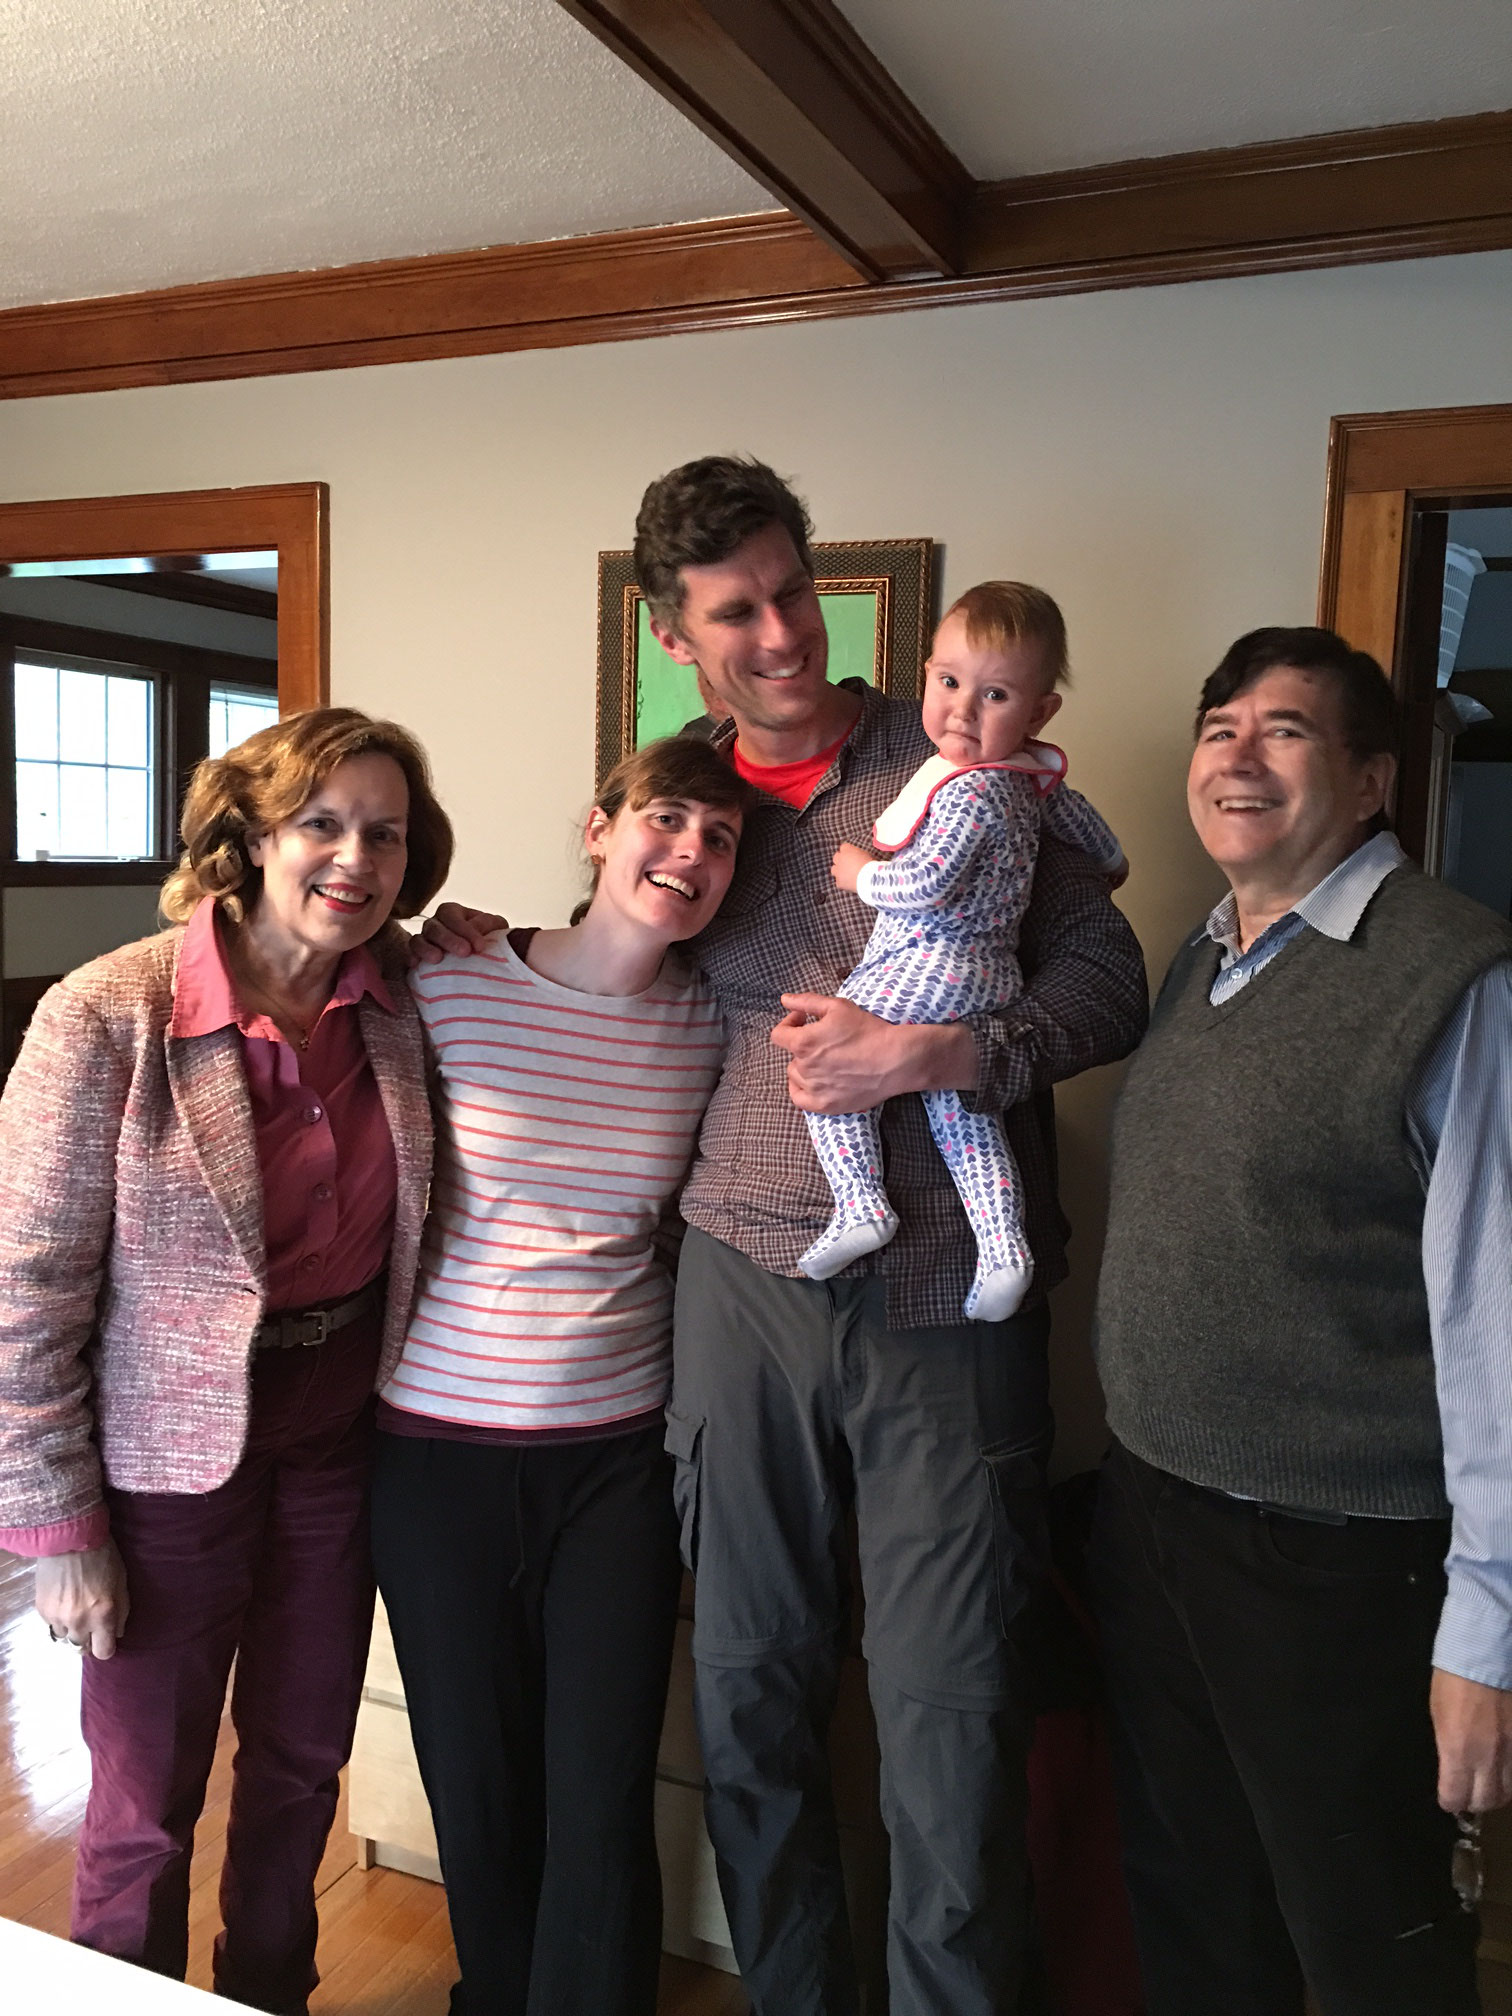 Lorraine, Anna Groner & Patrick Schupp, their daughter Celine, and John  5/3/16  Orchard St., Jamaica Plain MA